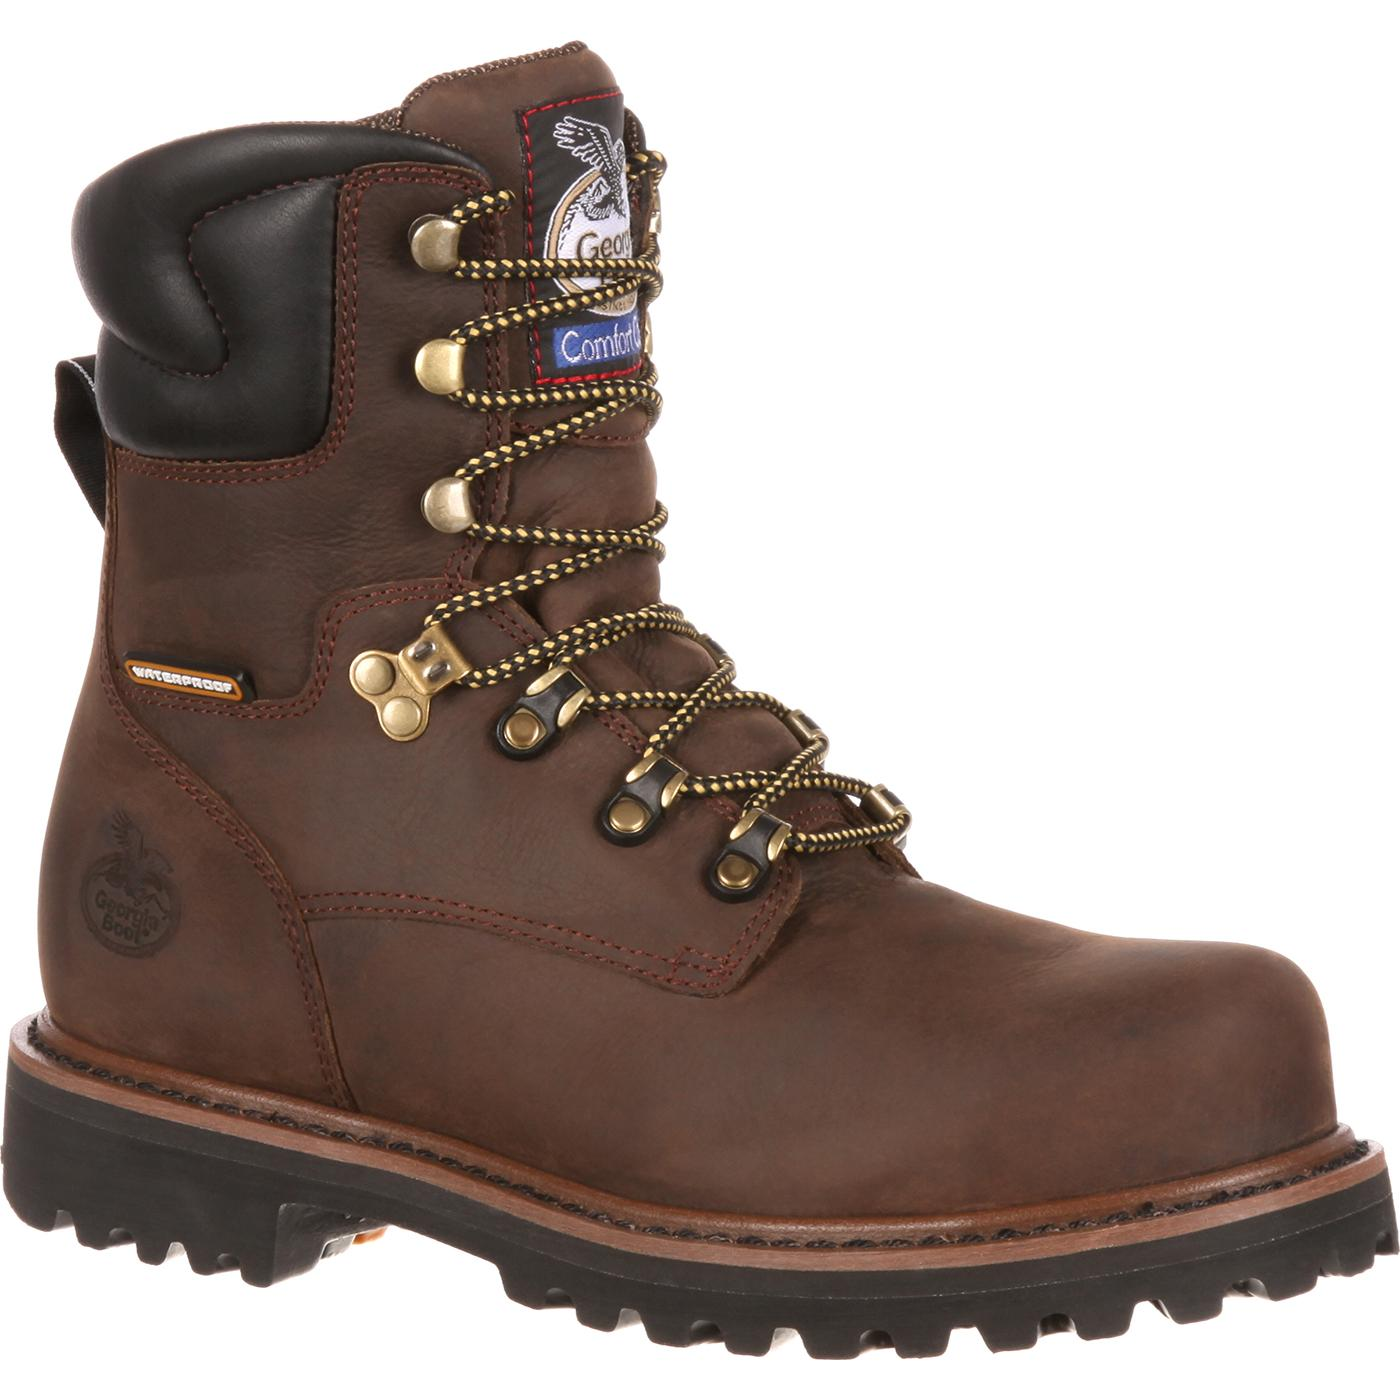 need be tex gore waterproof metatarsal comforter wearing boots large to miner mens you a re georgia extralarge toe comfortable men footwear s steel work internal if this